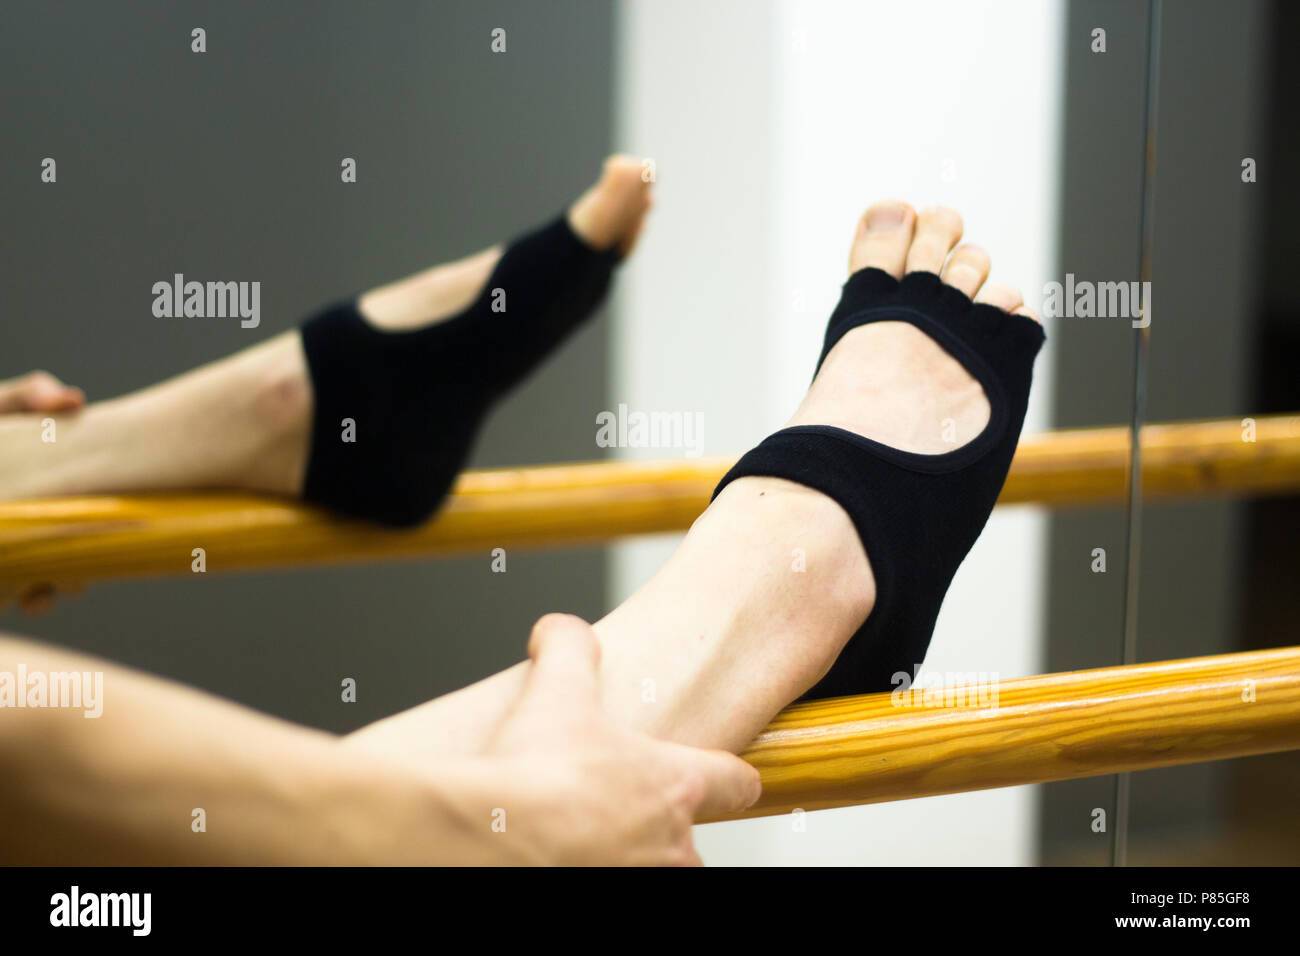 Pilates And Ballet Fitness Stretching And Yoga Studio Gym Bar Equipment And Dancer Stretching Stock Photo Alamy